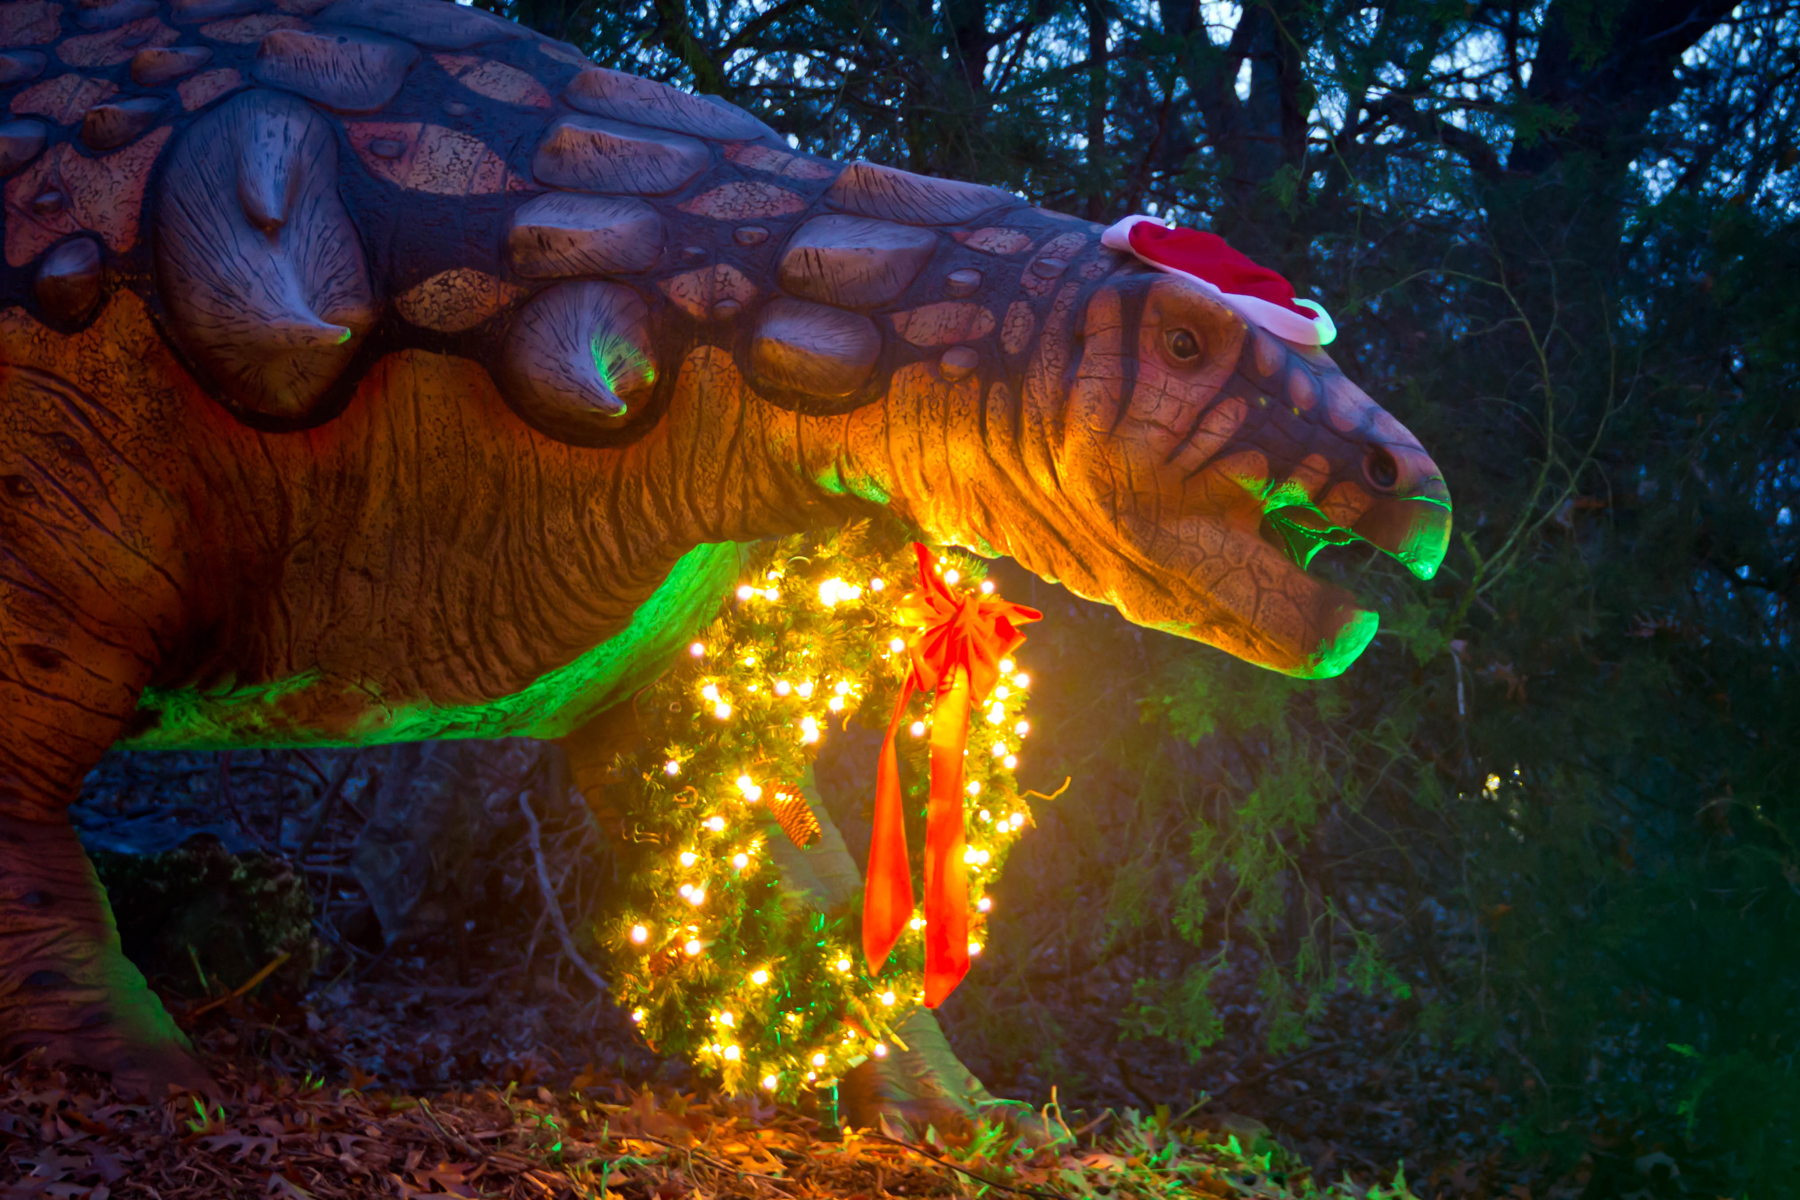 Holidays at the Heard Trail of Lights | Kathy Carter